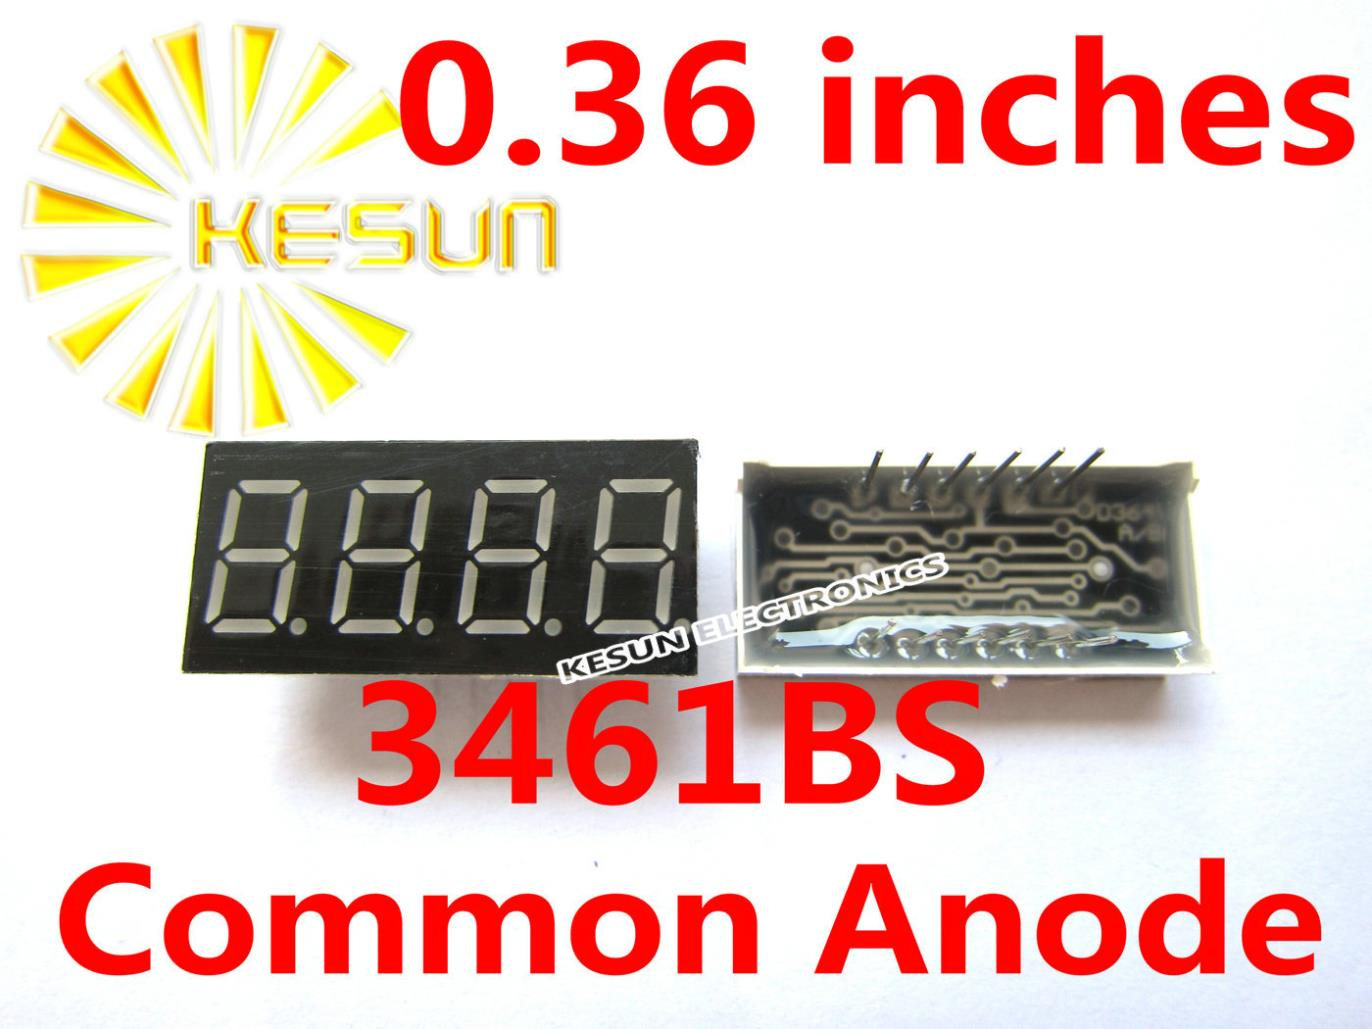 100PCS X 0.36 Inches Red Green Common Anode/Cathode 4 Digital Tube 3461BS 3461AS 3461AG 3461BG LED Display Module Light Beads